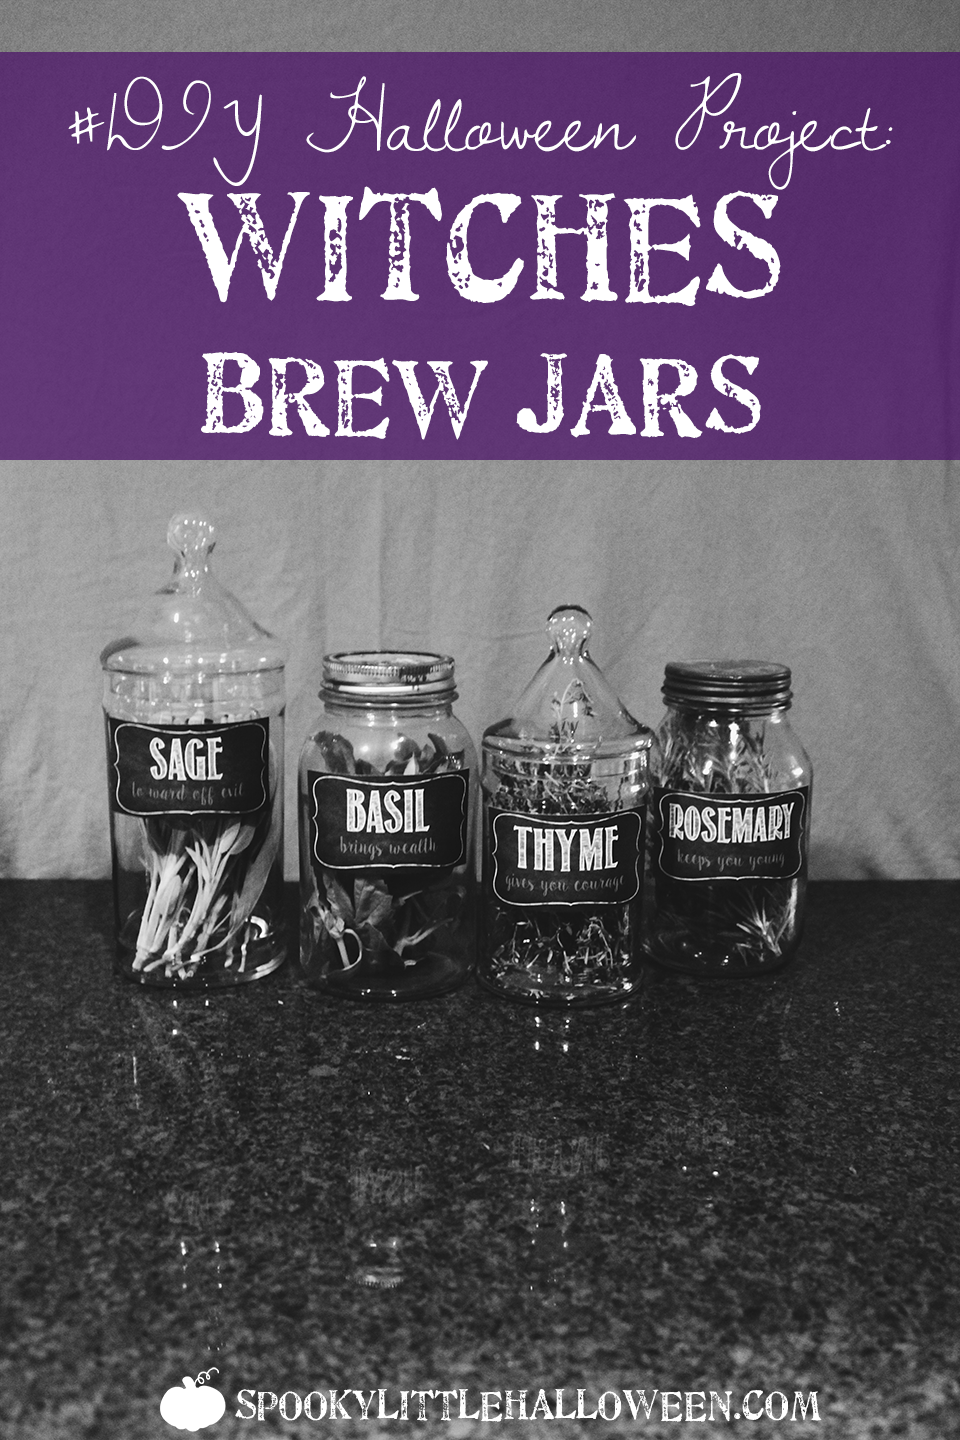 Halloween Craft Idea: Witches Brew Jars - Looking for a way to make your Halloween party a little more witchy? Check out these super simple (and cute!) witches brew jars I made for my 2015 party! | spookylittlehalloween.com